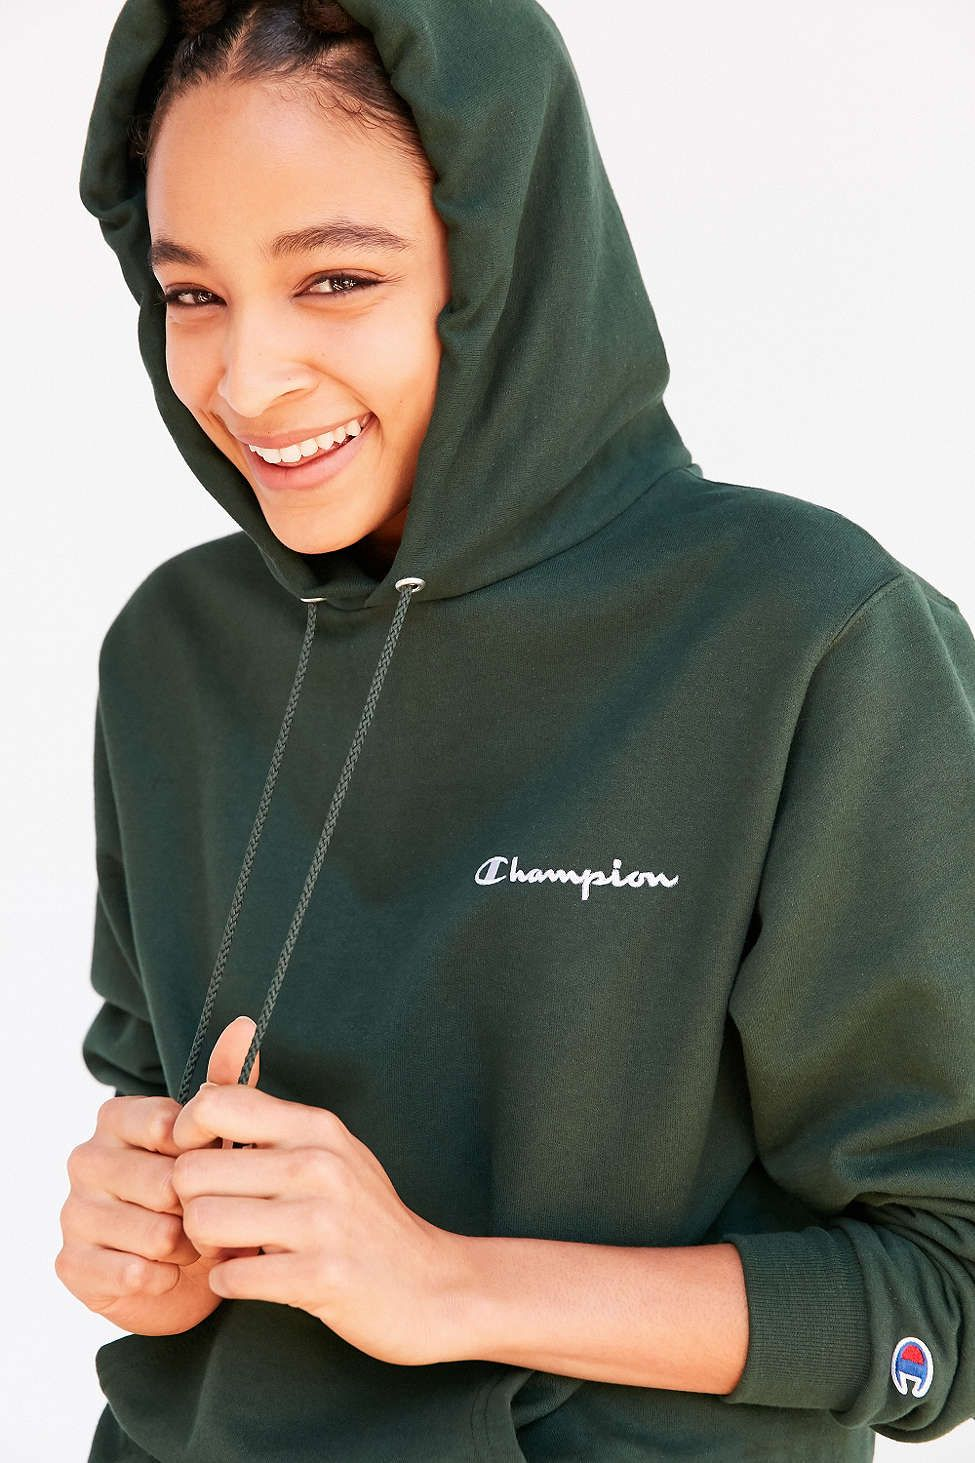 b8b7434cd Champion + UO Hunter Hoodie Sweatshirt | O U T E R W E A R ...